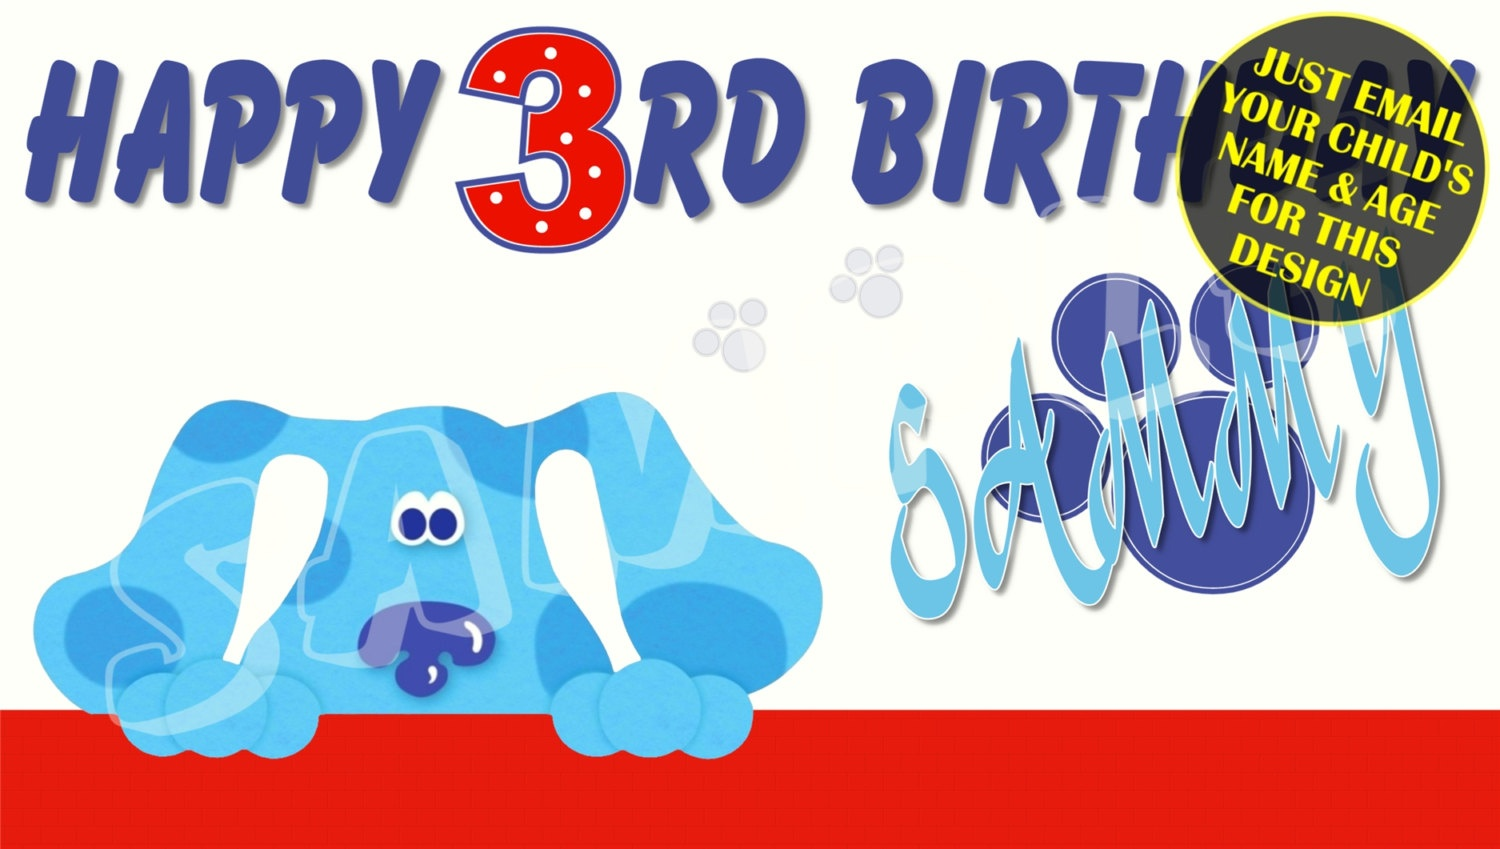 Blues Clues Personalized Birthday Banner With Free Printable   Etsy - Blue's Clues Invitations Free Printable